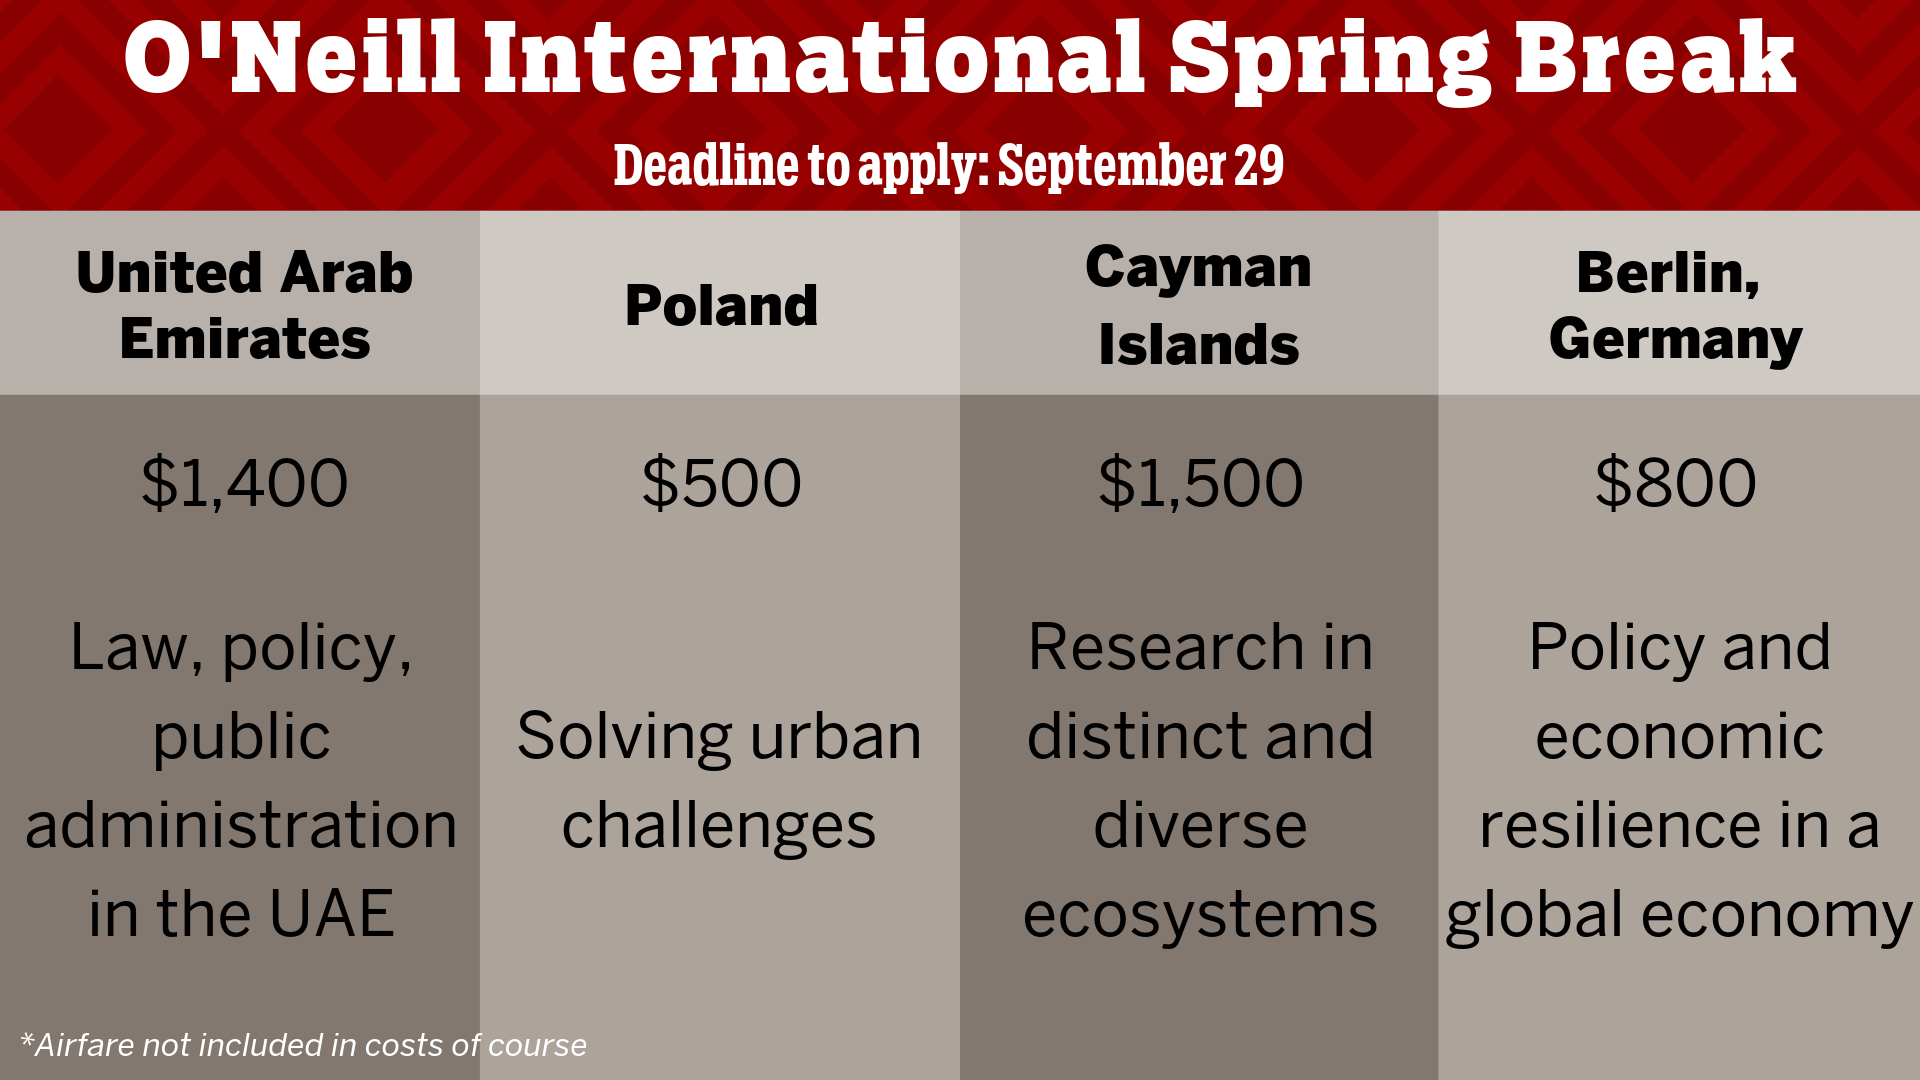 Graphic with details to apply for spring break study abroad. UAE trip: $1400, law, policy, public administration. Poland, $500, solving urban challenges, Cayman Islands $1,500, research in diverse ecosystems, Berlin $800 policy and economic resilience. Airfare is not included in the cost of the course.